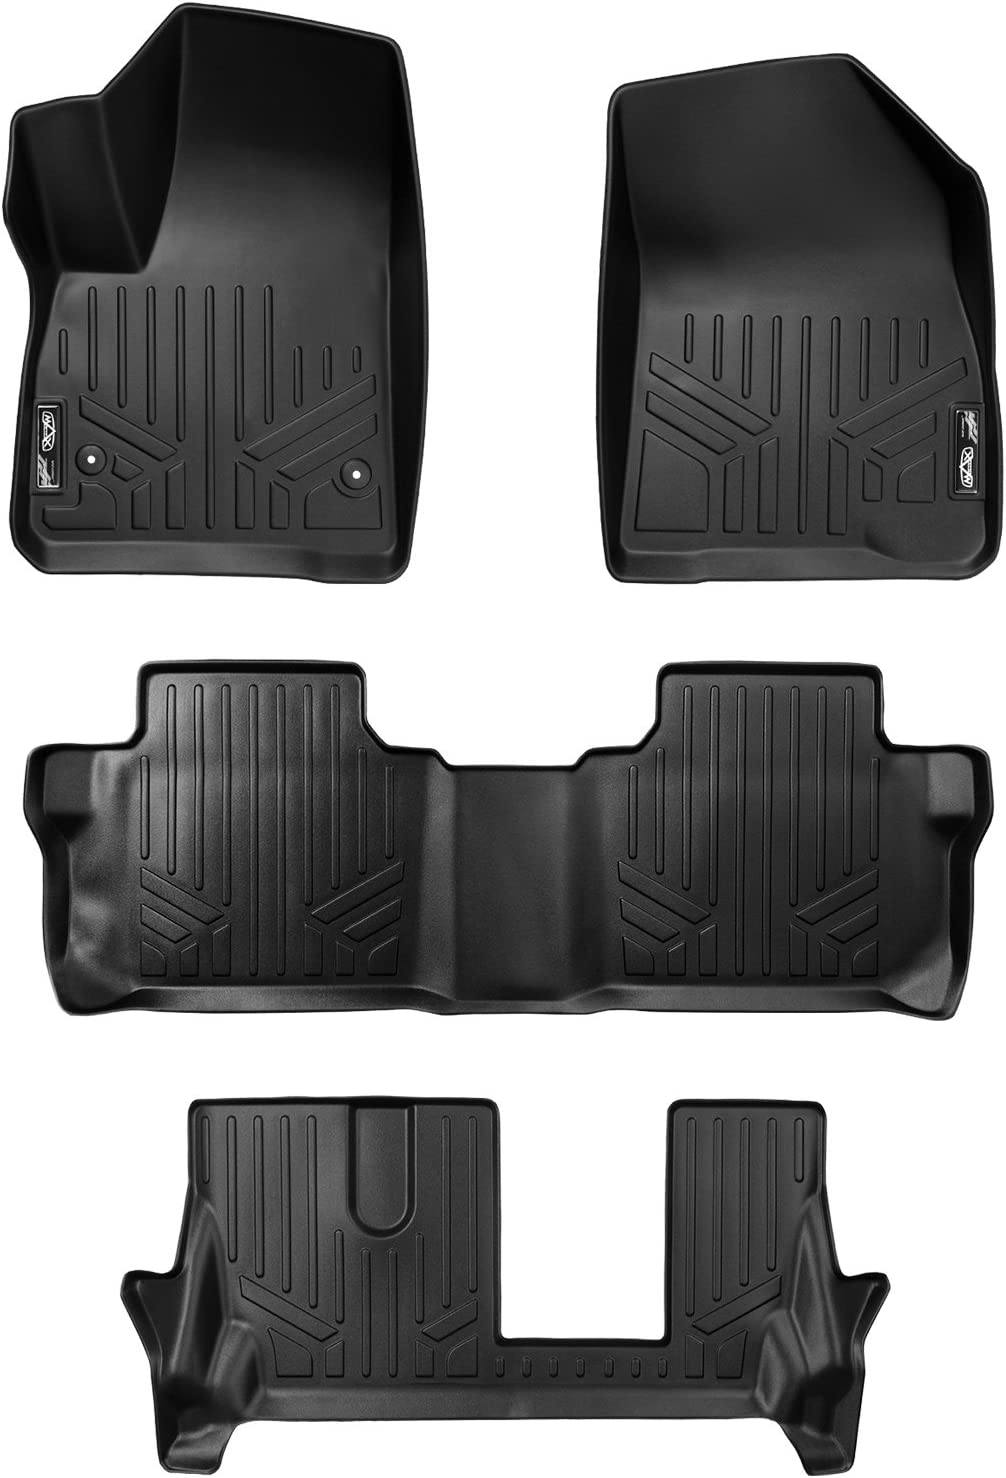 SMARTLINER Custom Fit Floor Mats 3 Row Liner Set Black for 2017-2019 GMC Acadia with 2nd Row Bench Seat